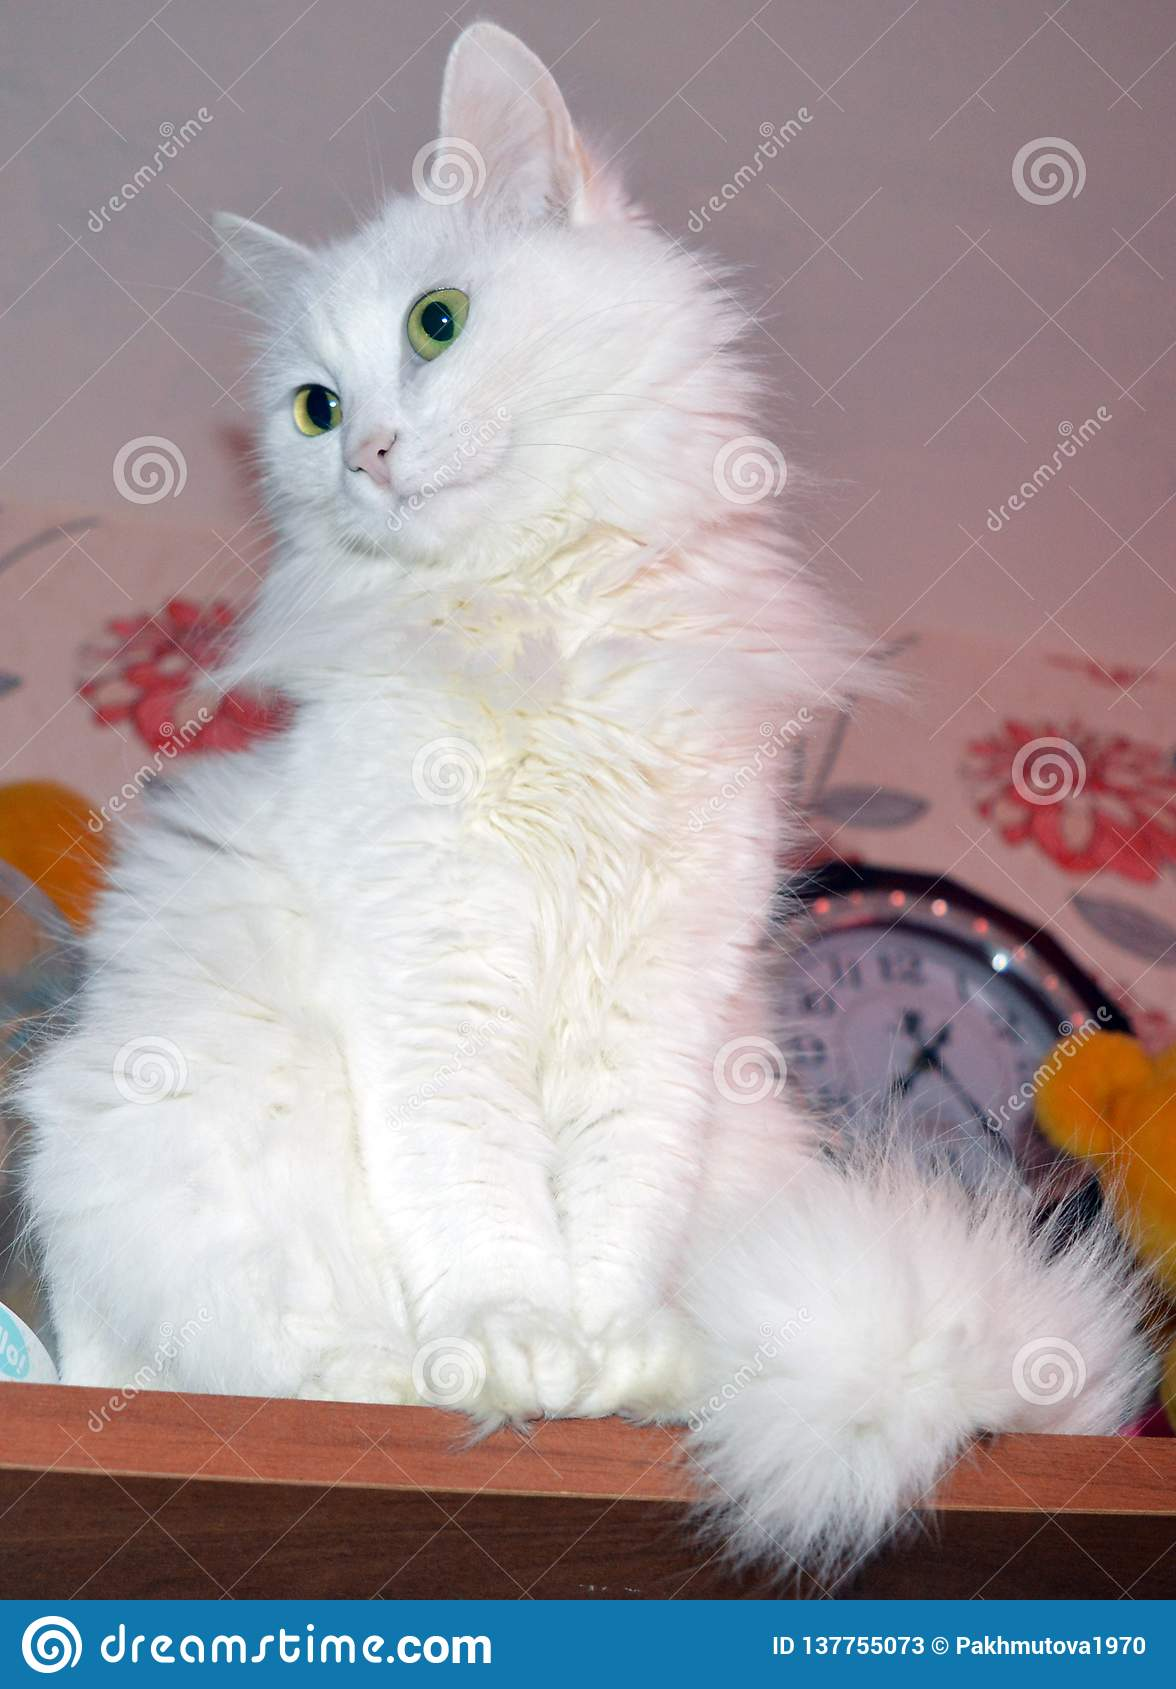 Cat Kitten White Pet Animal Cute Feline Kitty Domestic Fur Young Adorable Blue Eyes Siberian Fluffy Portrait Baby Stock Image Image Of Handsome Cooking 137755073